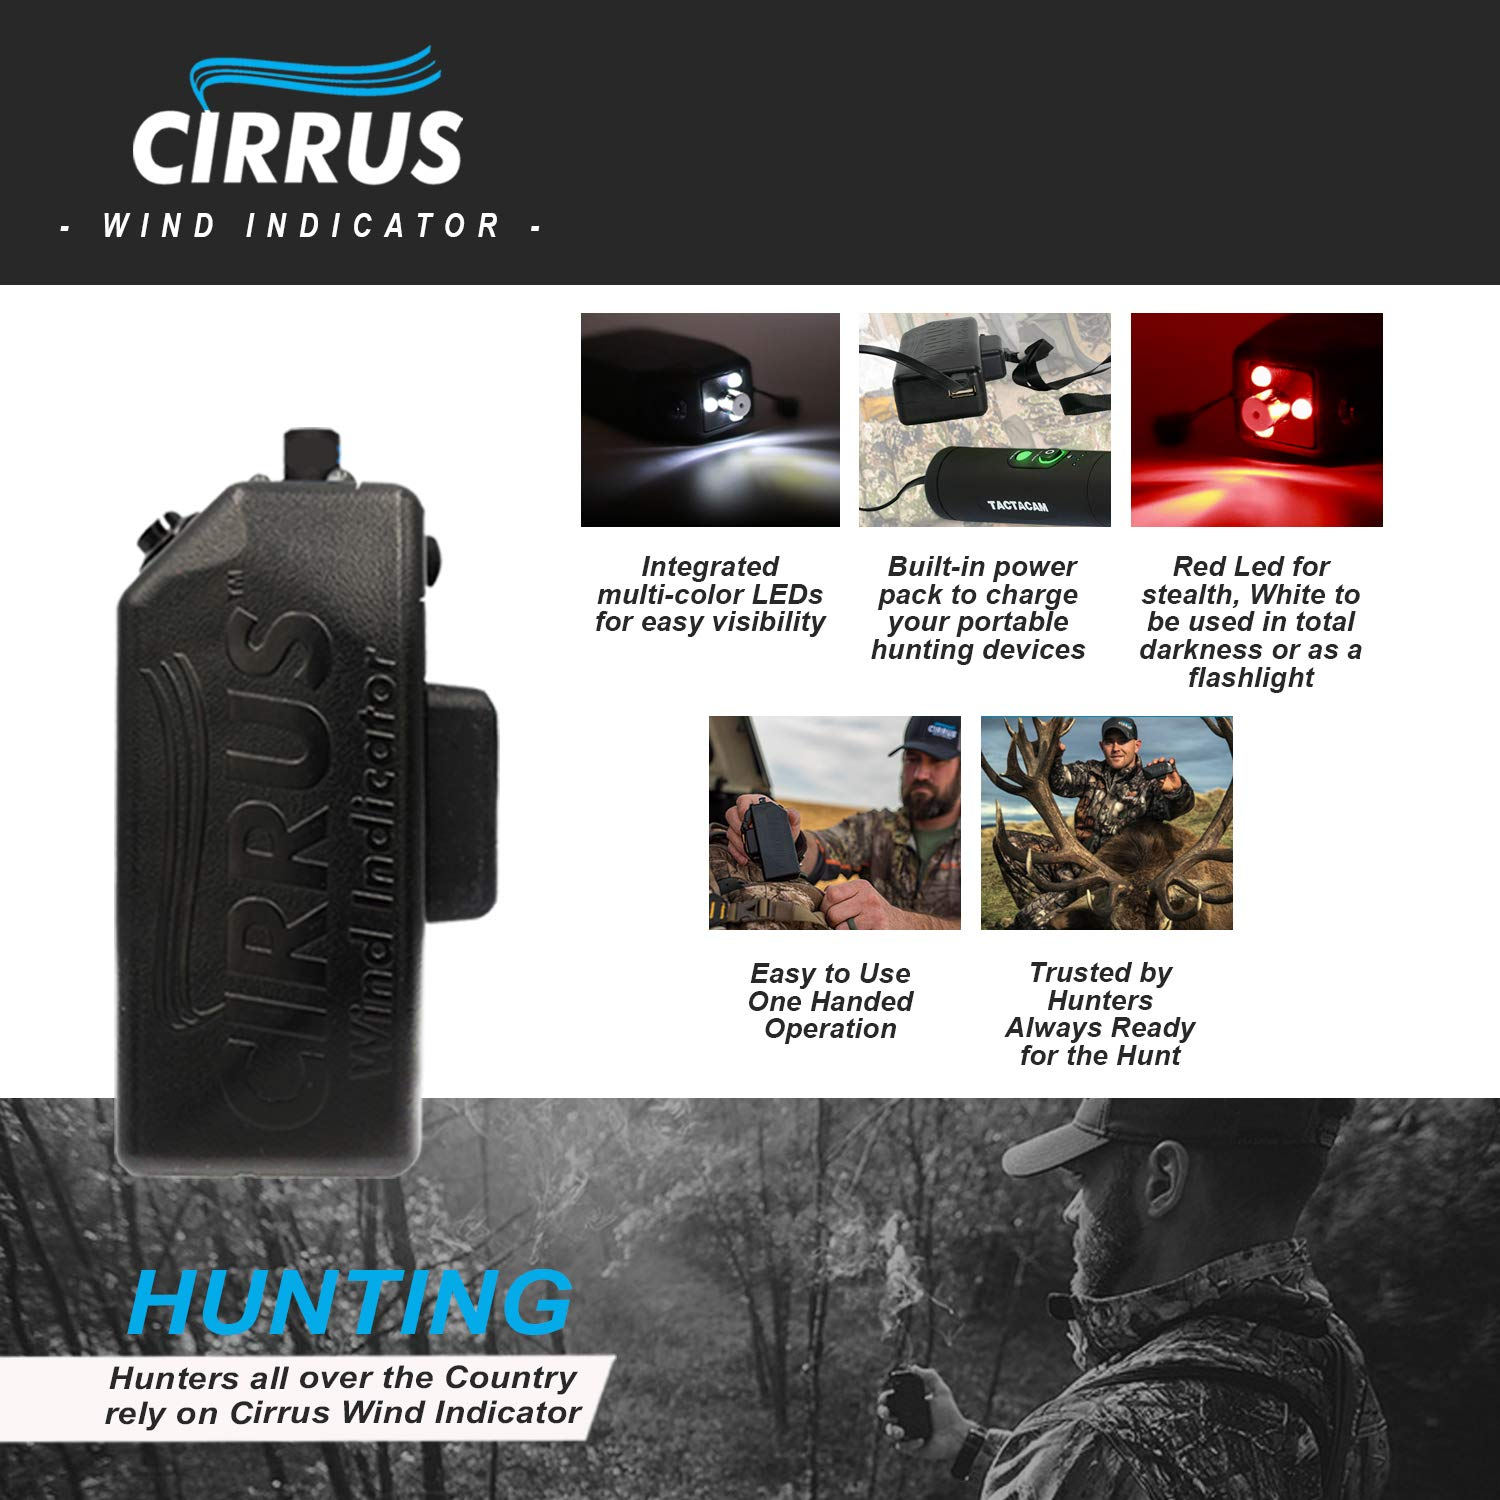 Cirrus Wind Indicator for Hunting - The Perfect Wind Checker Alternative to Messy Powder by Cirrus (Image #4)